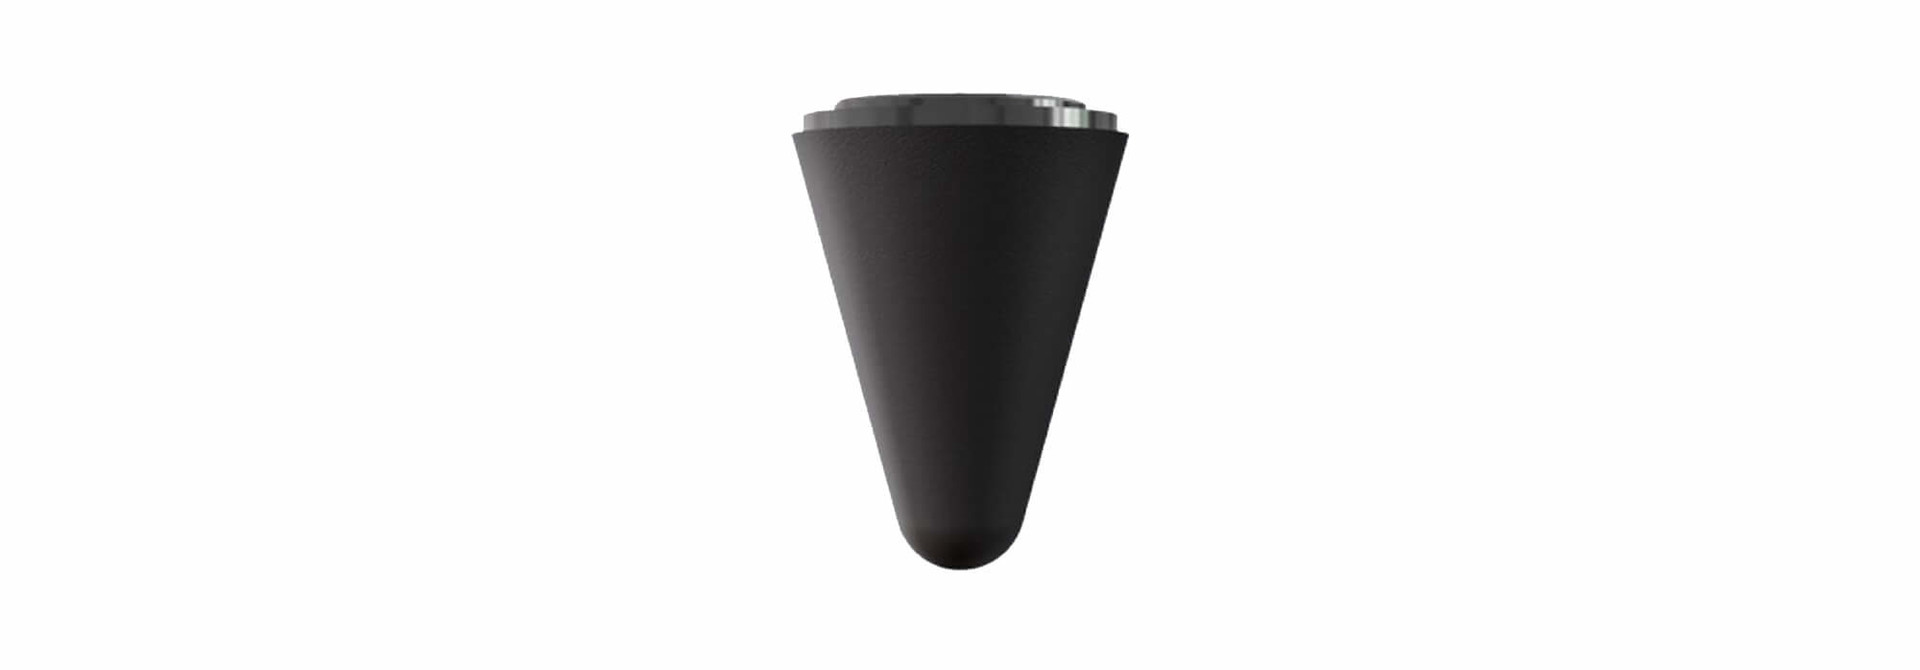 Cone Attachment For G3, G3 Pro